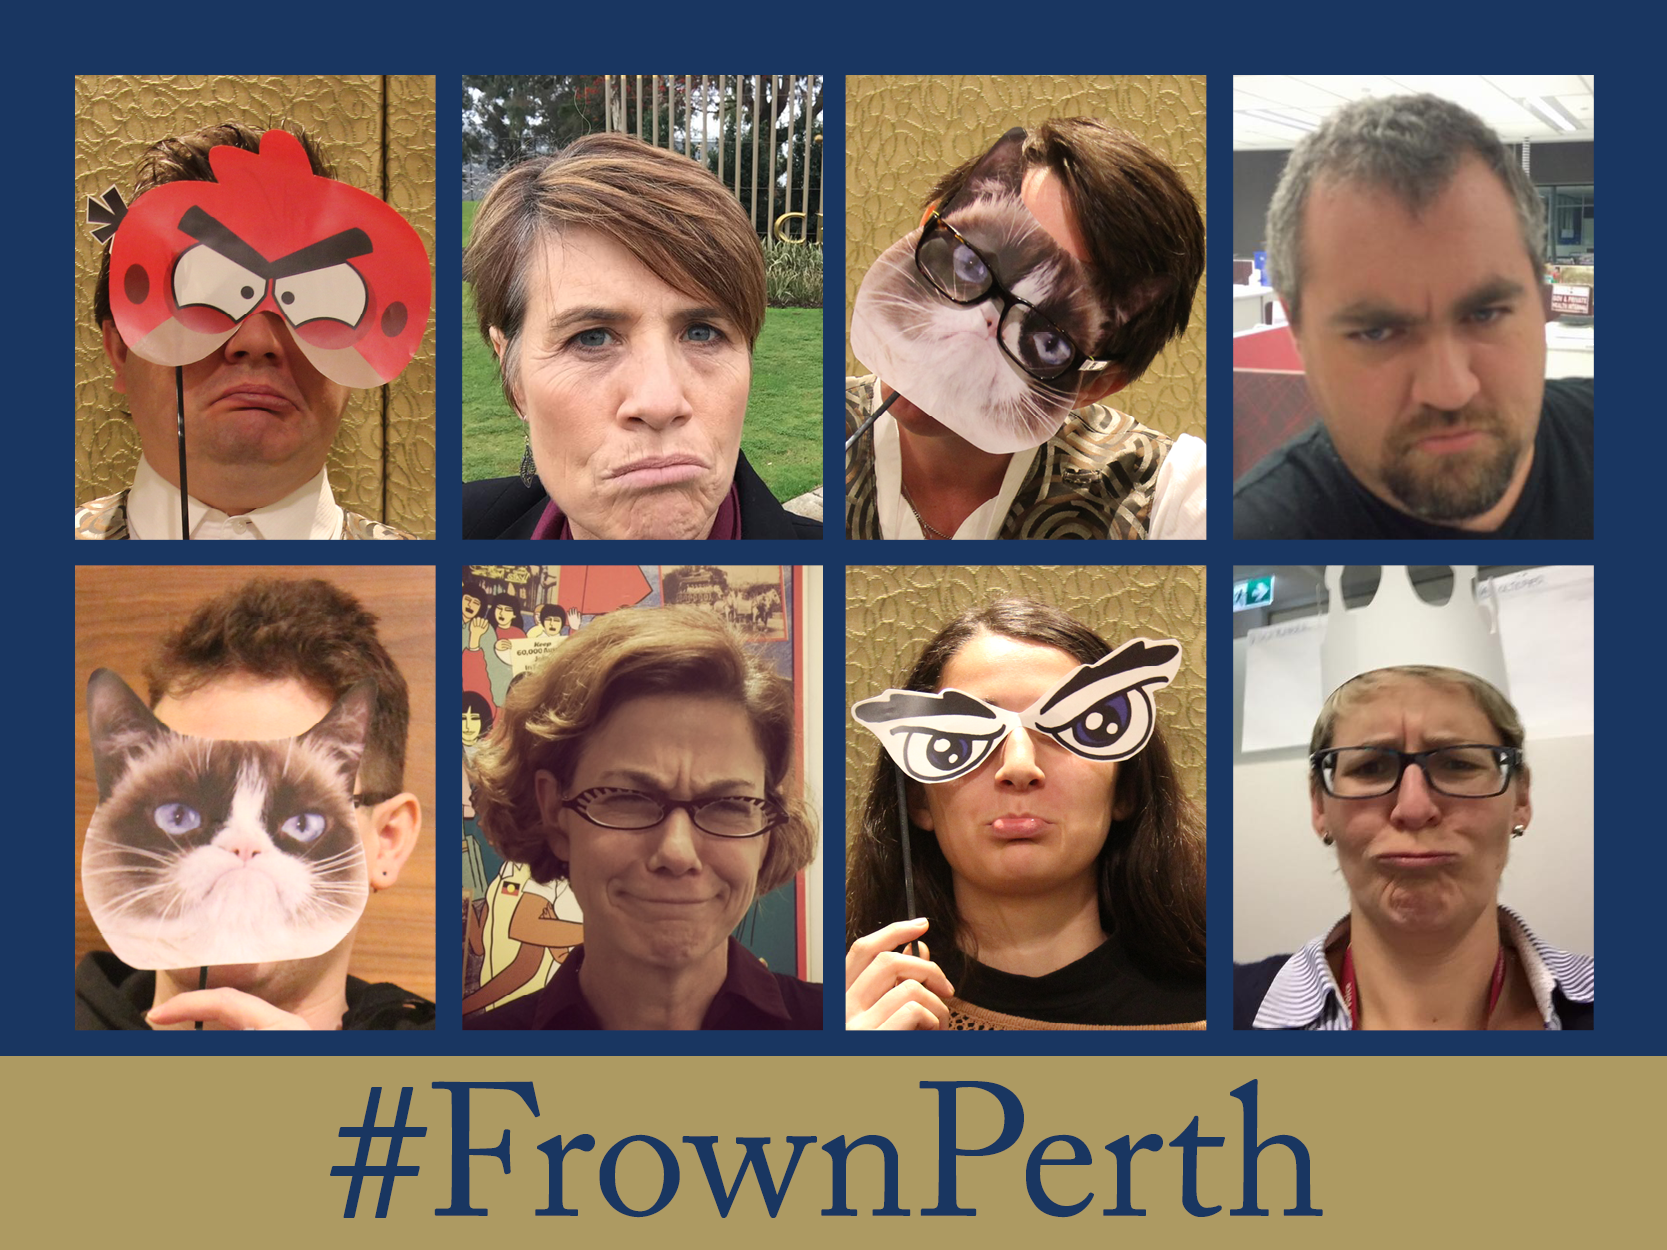 Frown Perth